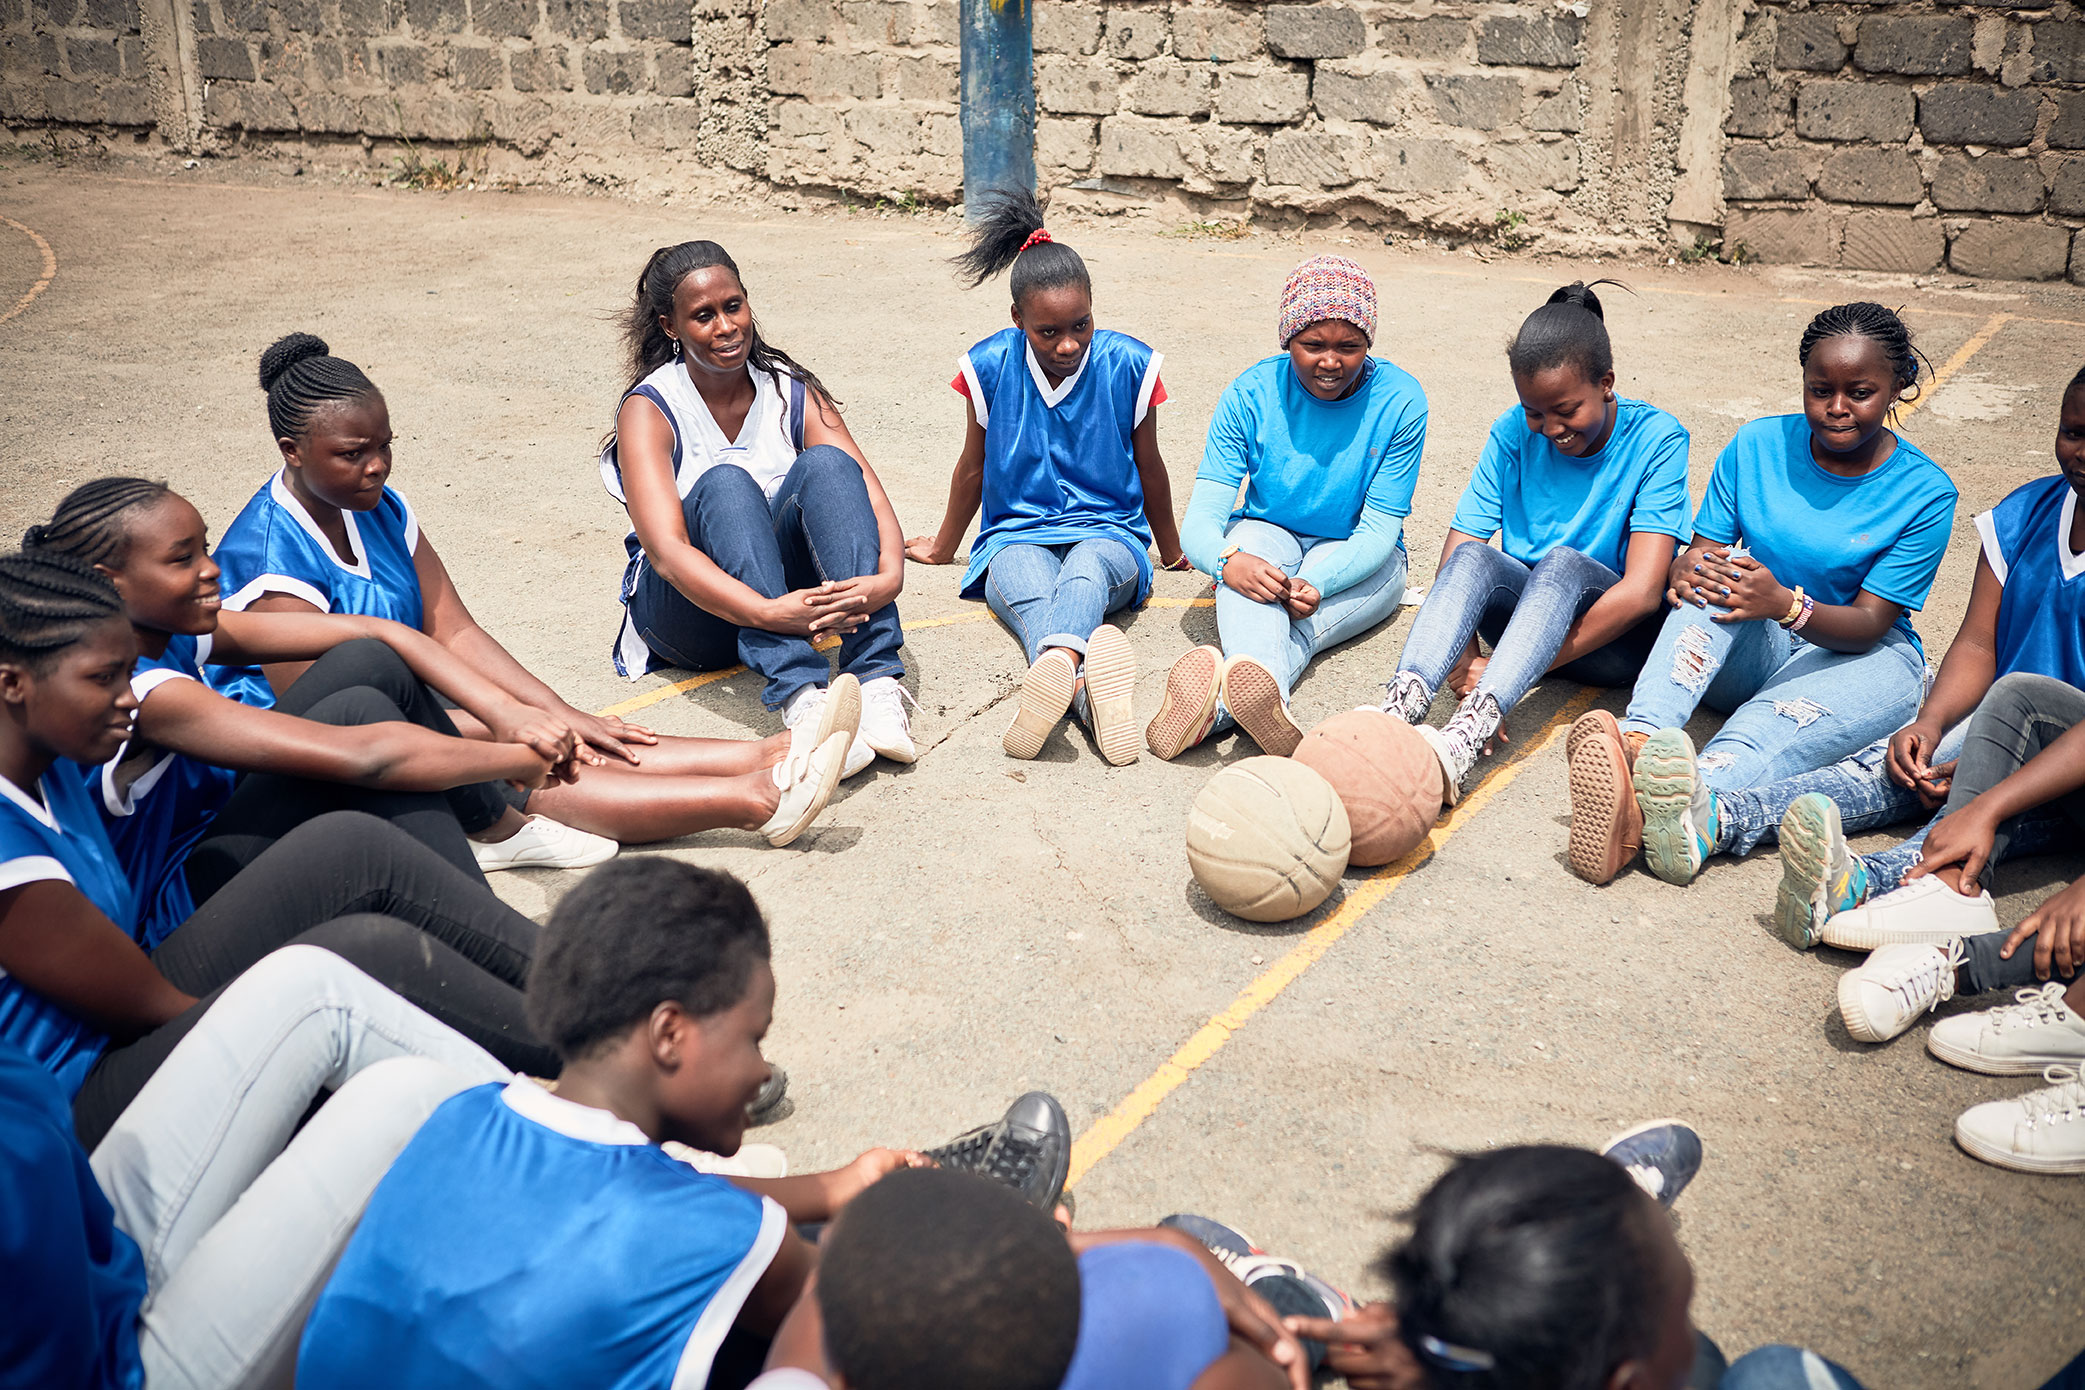 Peninah gathers one of the Safe Spaces basketball teams for a discussion after practice. Photo: Juozas Cernius/CARE